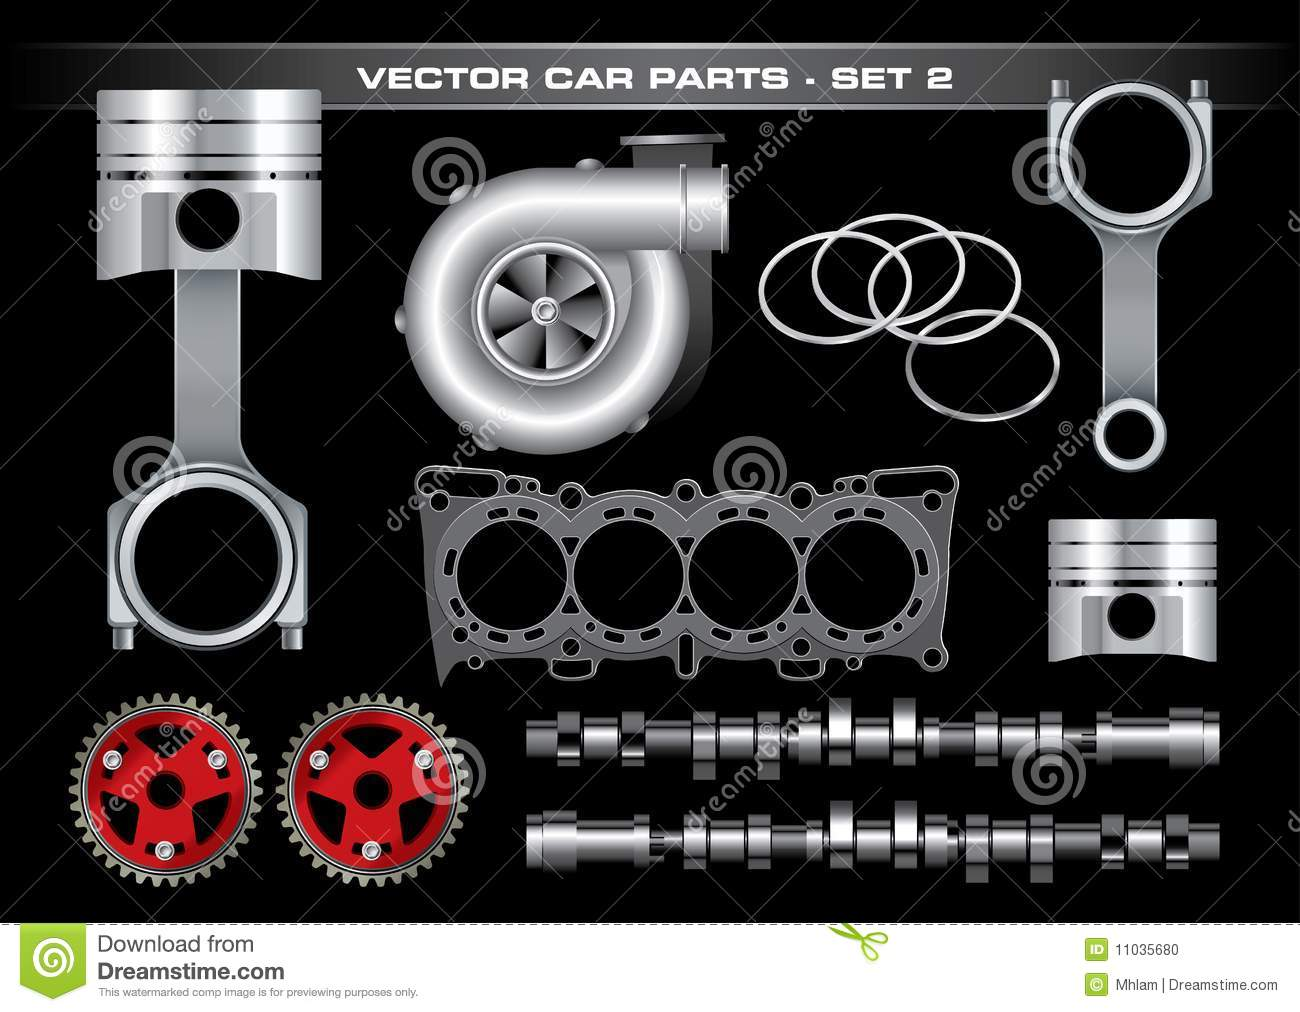 Ar Hammer Parts Drawings as well Working Piston Engine Vectors further Kenworth T Chassis Truck Lq additionally Vector Car Parts Set also Chevrolet Chevelle Mk Ss Hardtop Coupe Lq. on blueprint car parts